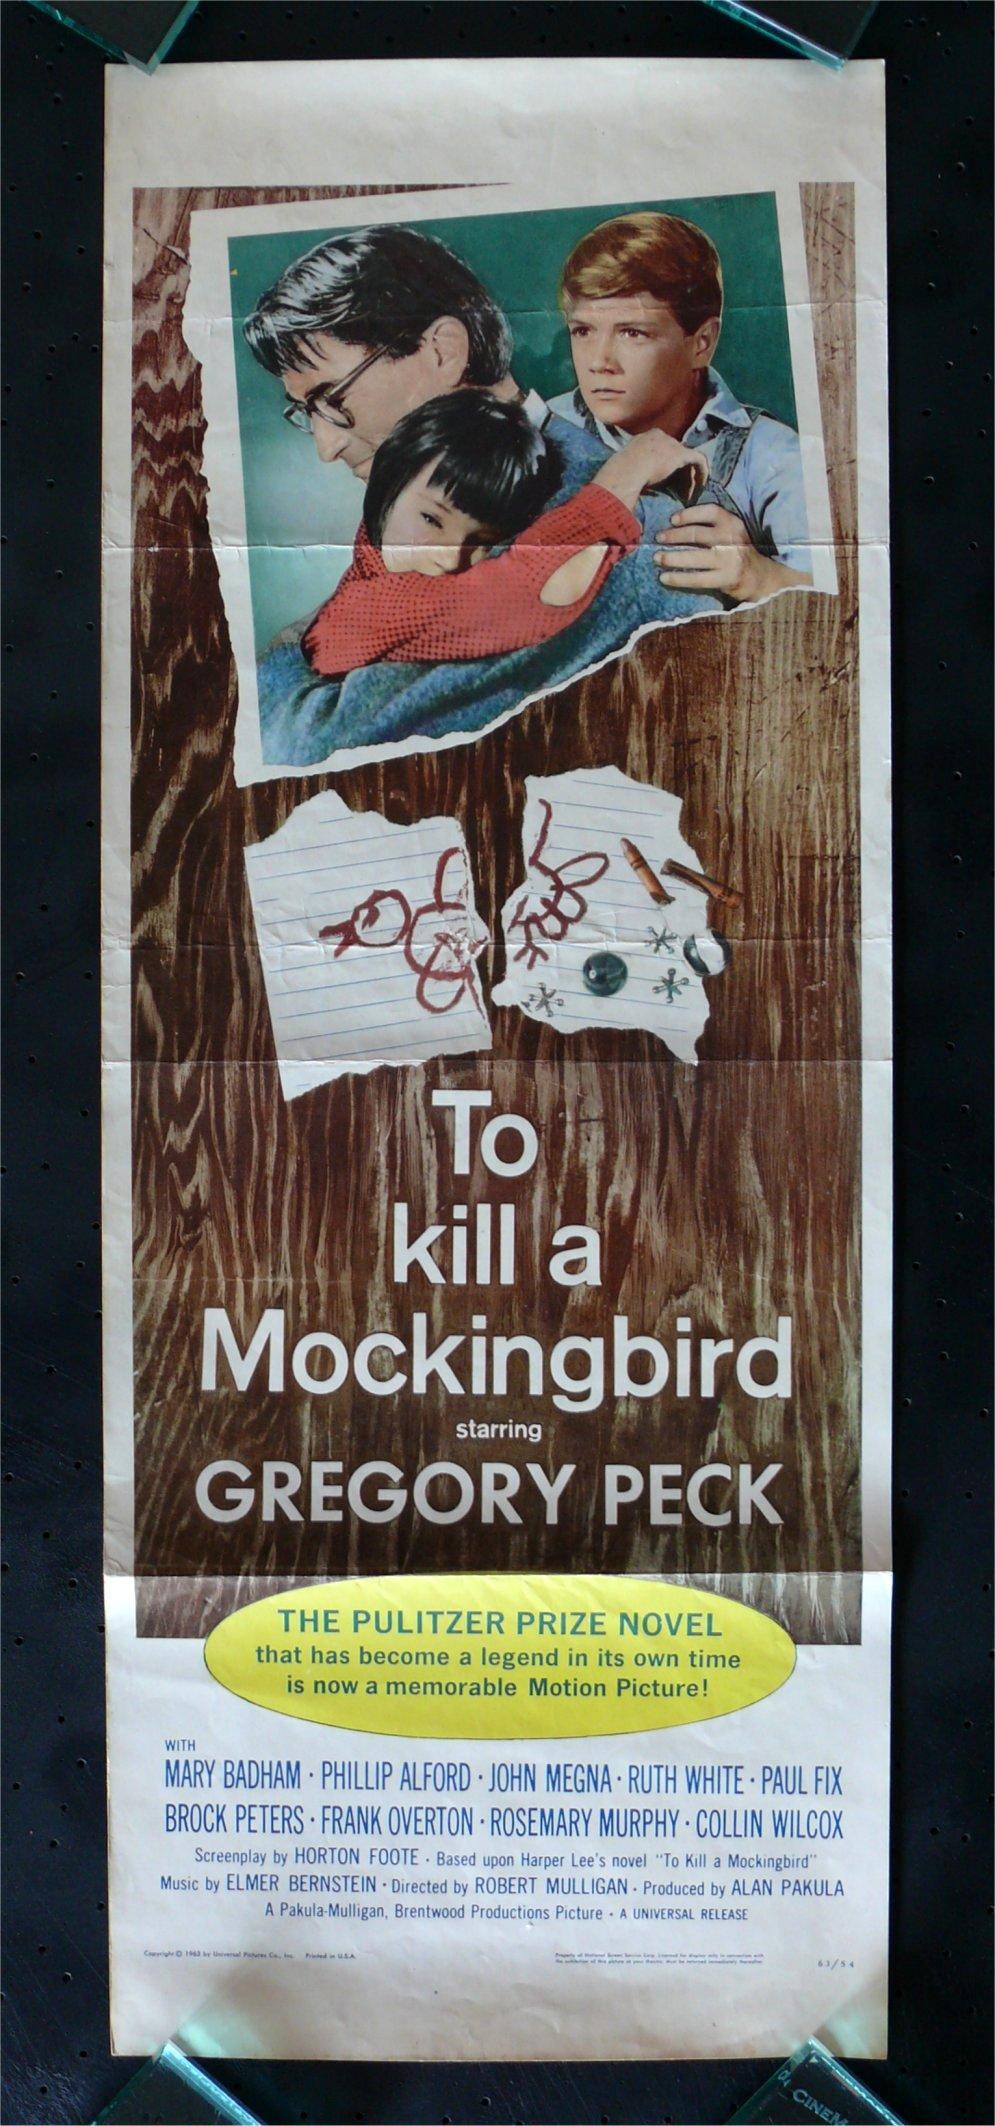 an analysis of scout in to kill a mockingbird In the novel, to kill a mockingbird, the character scout plays an important role  harper lee portrays her as straightforward, abrupt, impulsive, and even just.